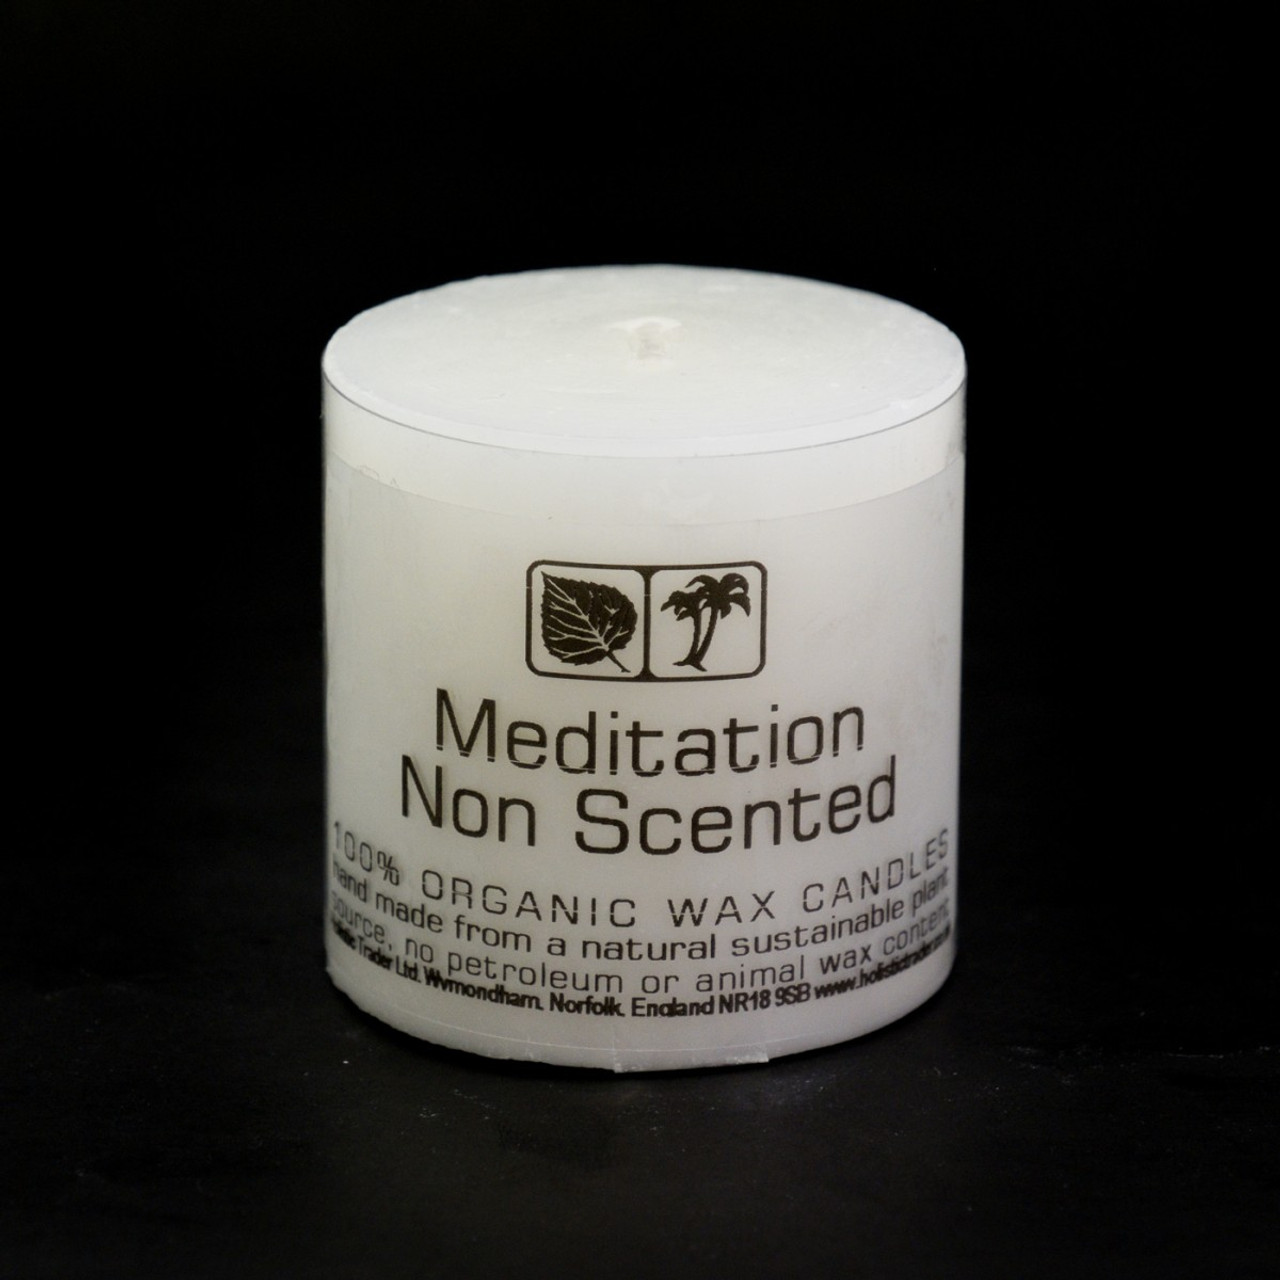 Small Non Scented Meditation Candle (5x5cm)